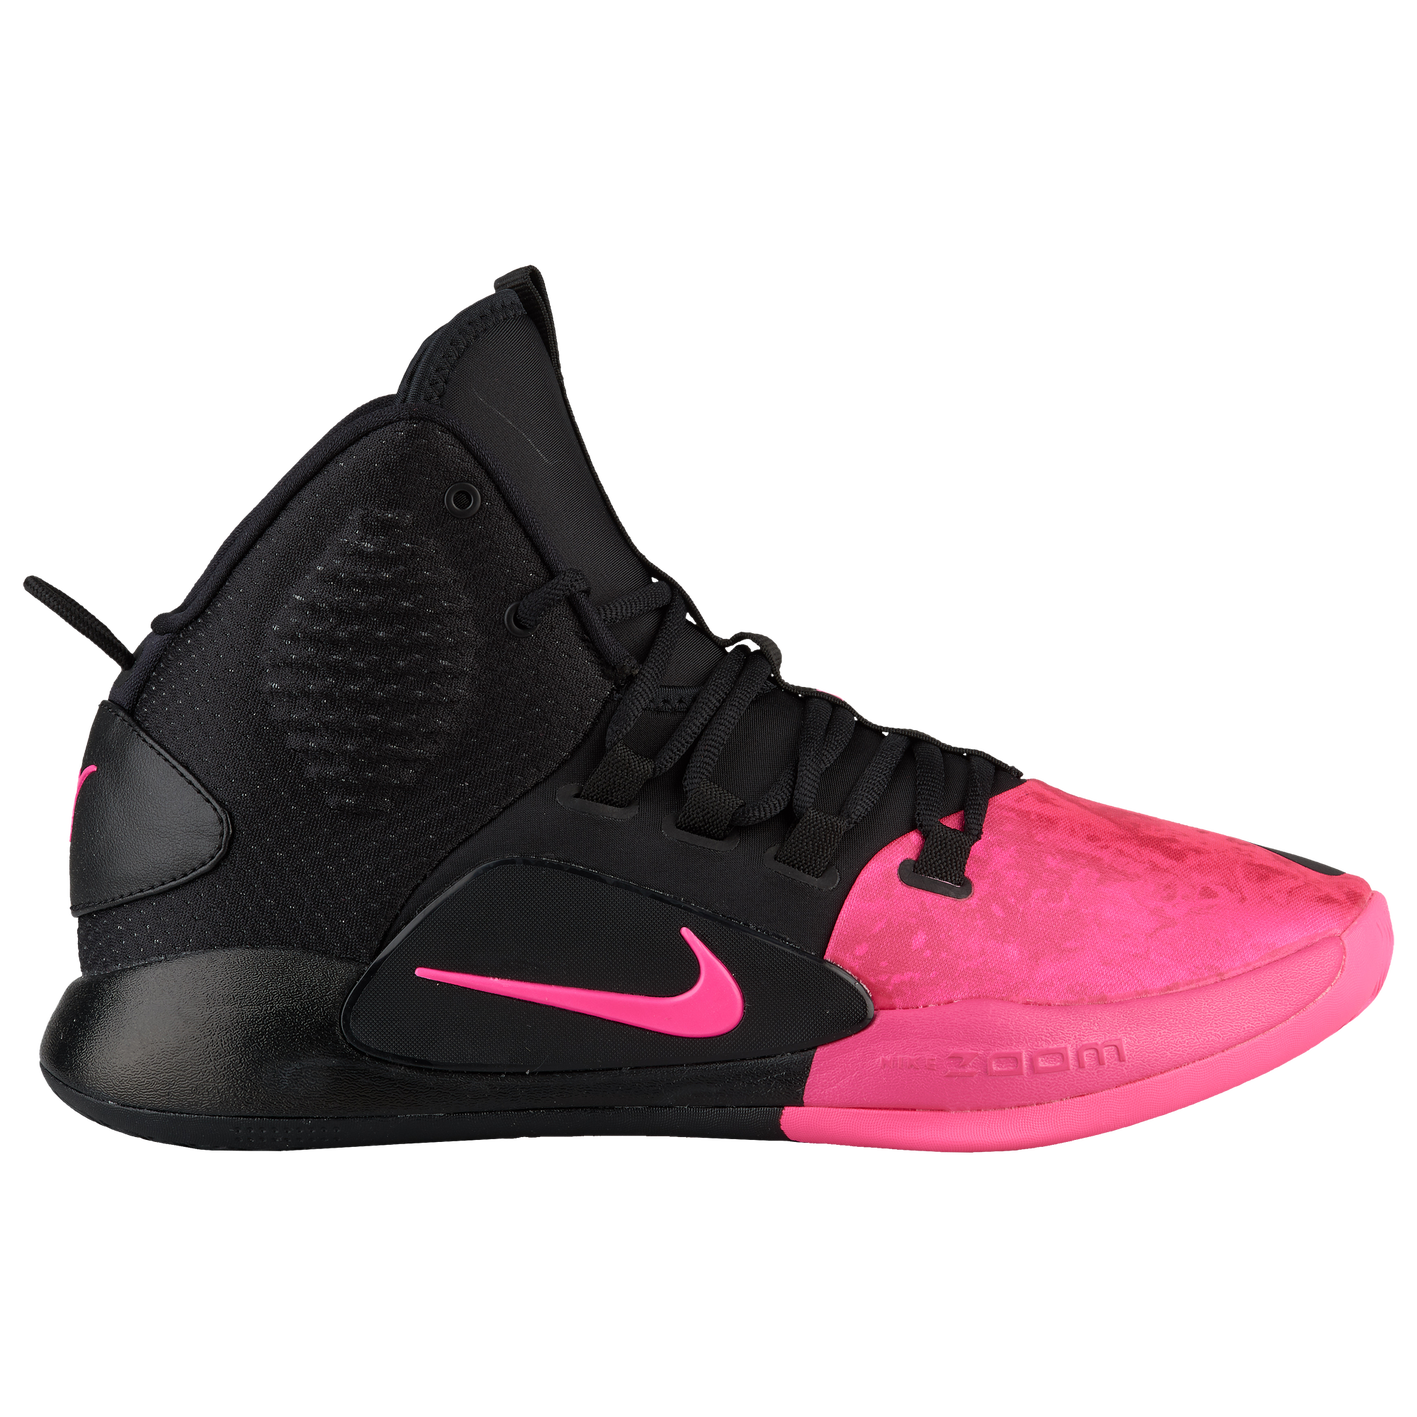 3d4f003b349 Nike Hyperdunk X Mid - Men s - Basketball - Shoes - Black Pink Blast